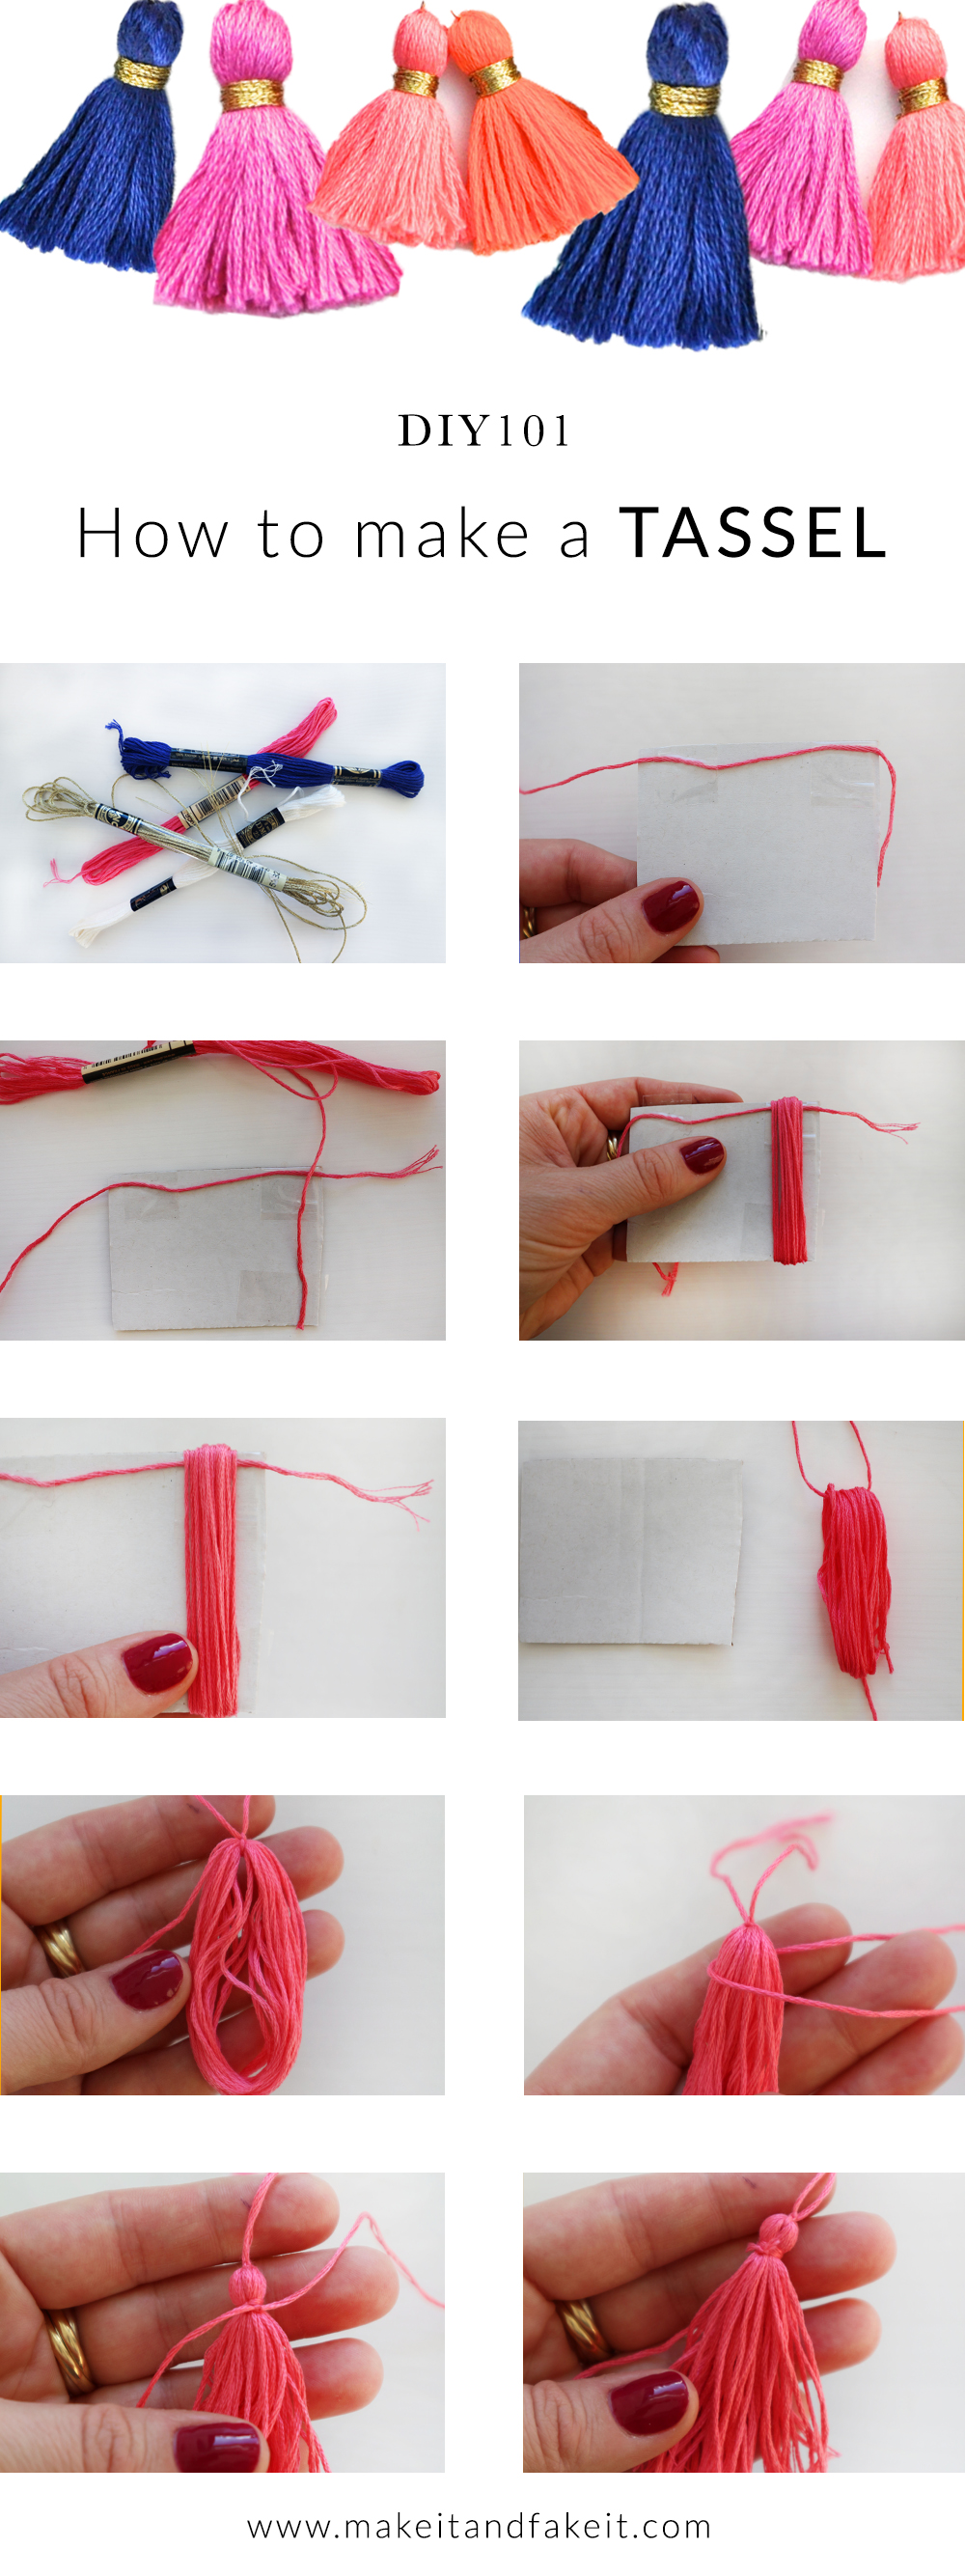 DIY101: How to make a tassel